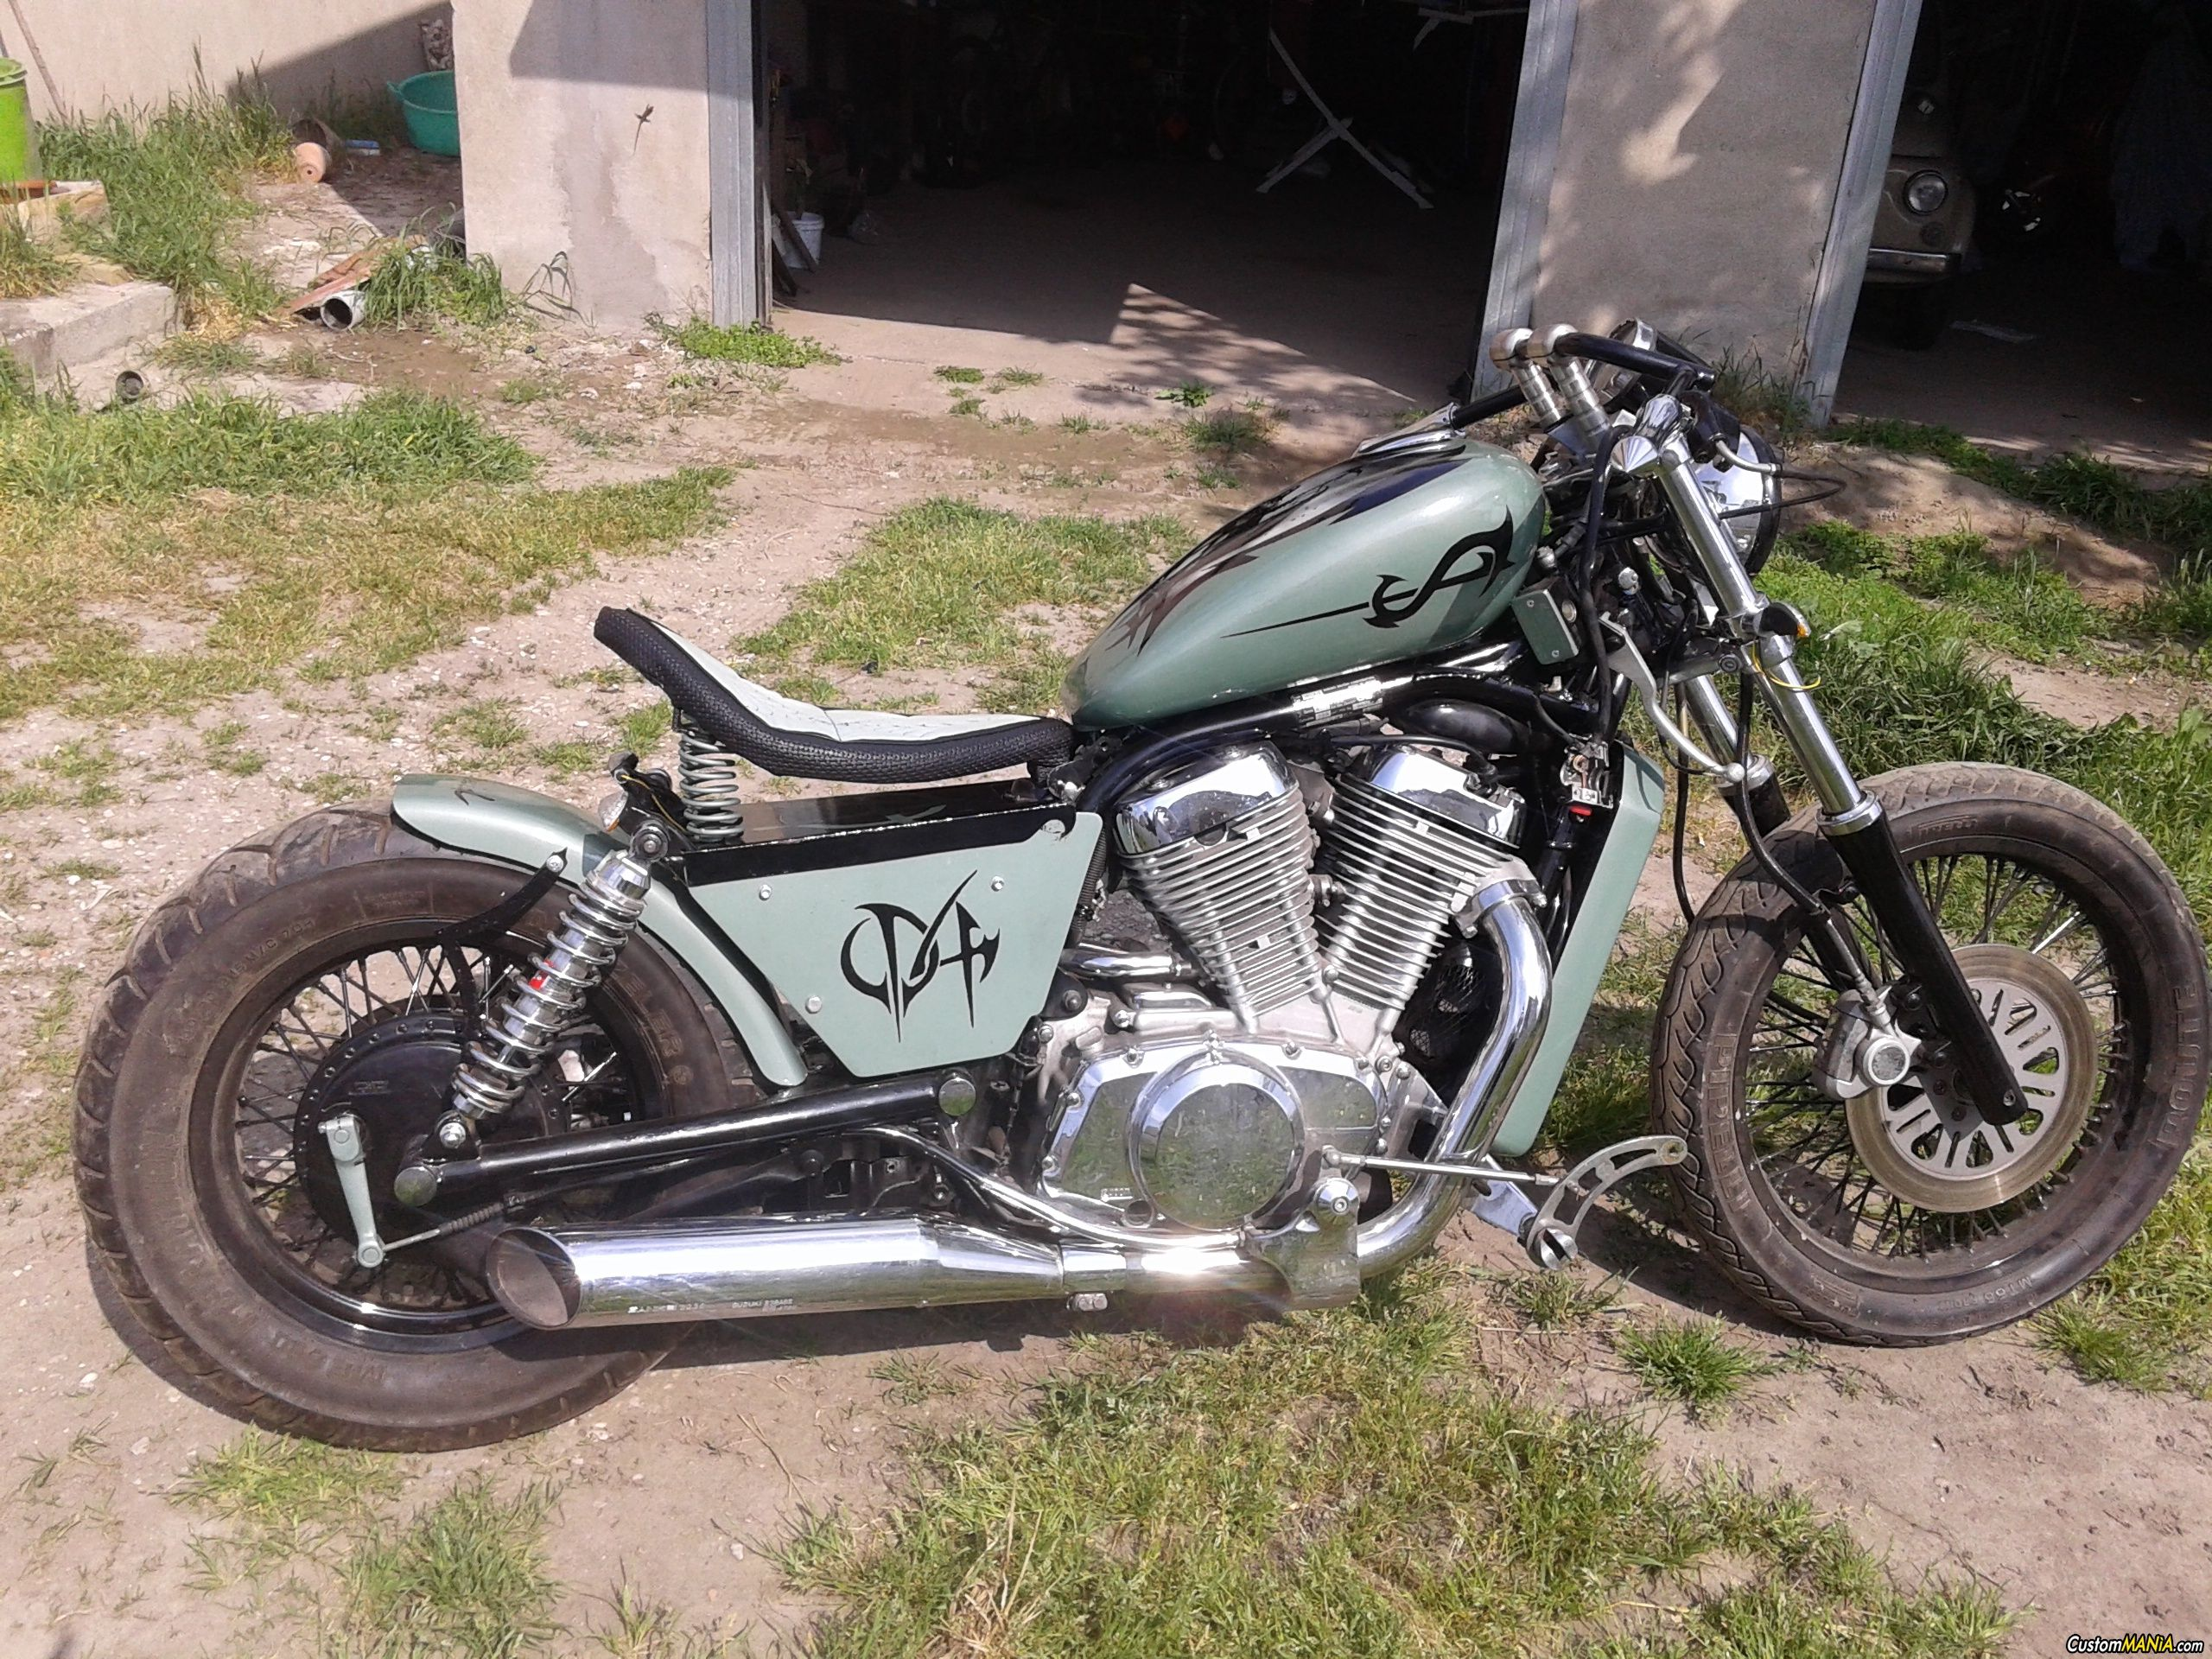 suzuki intruder 800 bobber see more on custommania and upload